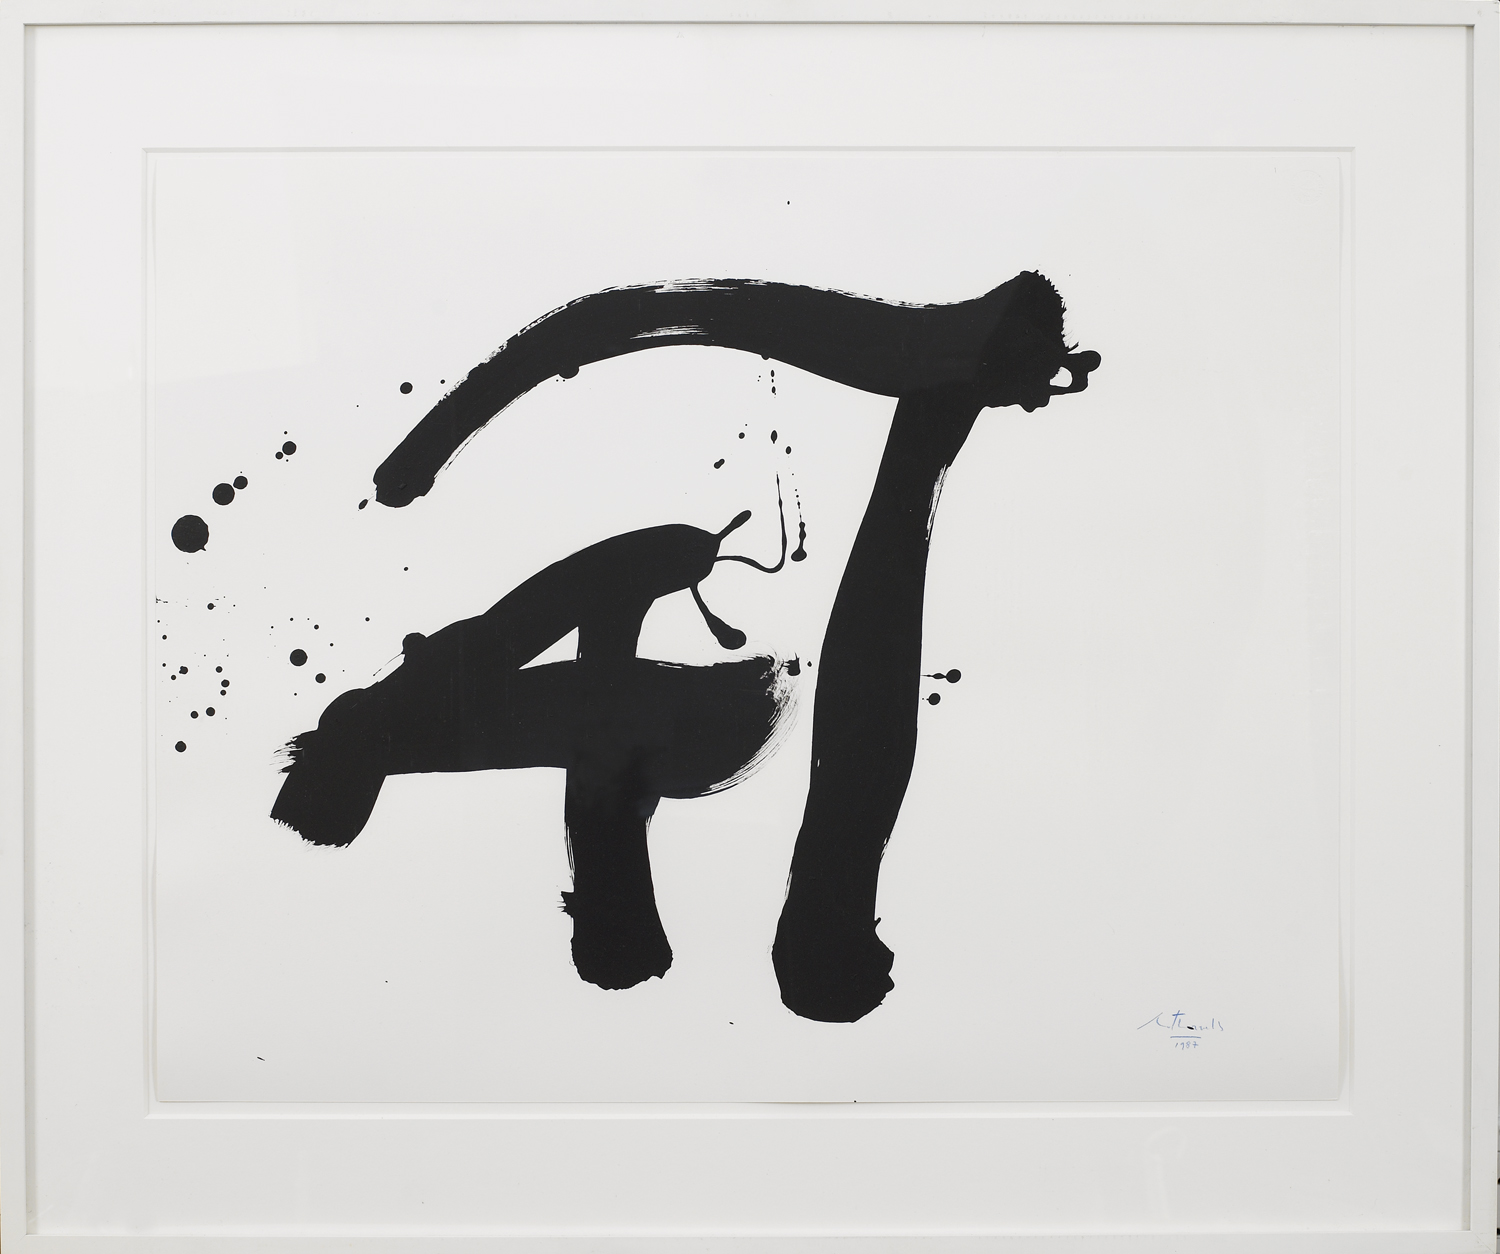 Robert Motherwell,  Untitled , 1987, synthetic polymer paint on strathmore paper, 23 x 29 inches